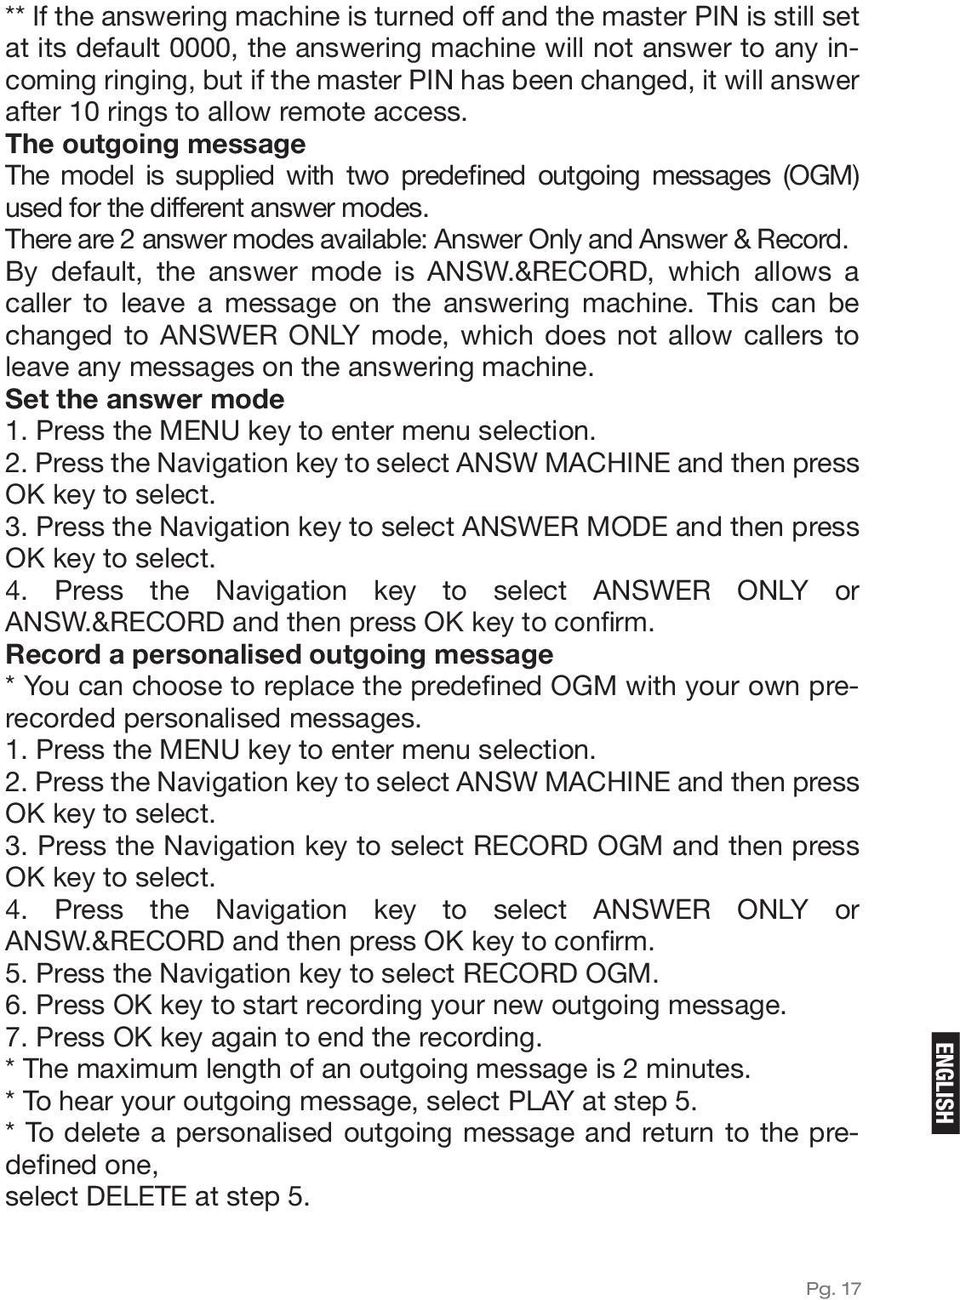 There are 2 answer modes available: Answer Only and Answer & Record. By default, the answer mode is ANSW.&RECORD, which allows a caller to leave a message on the answering machine.